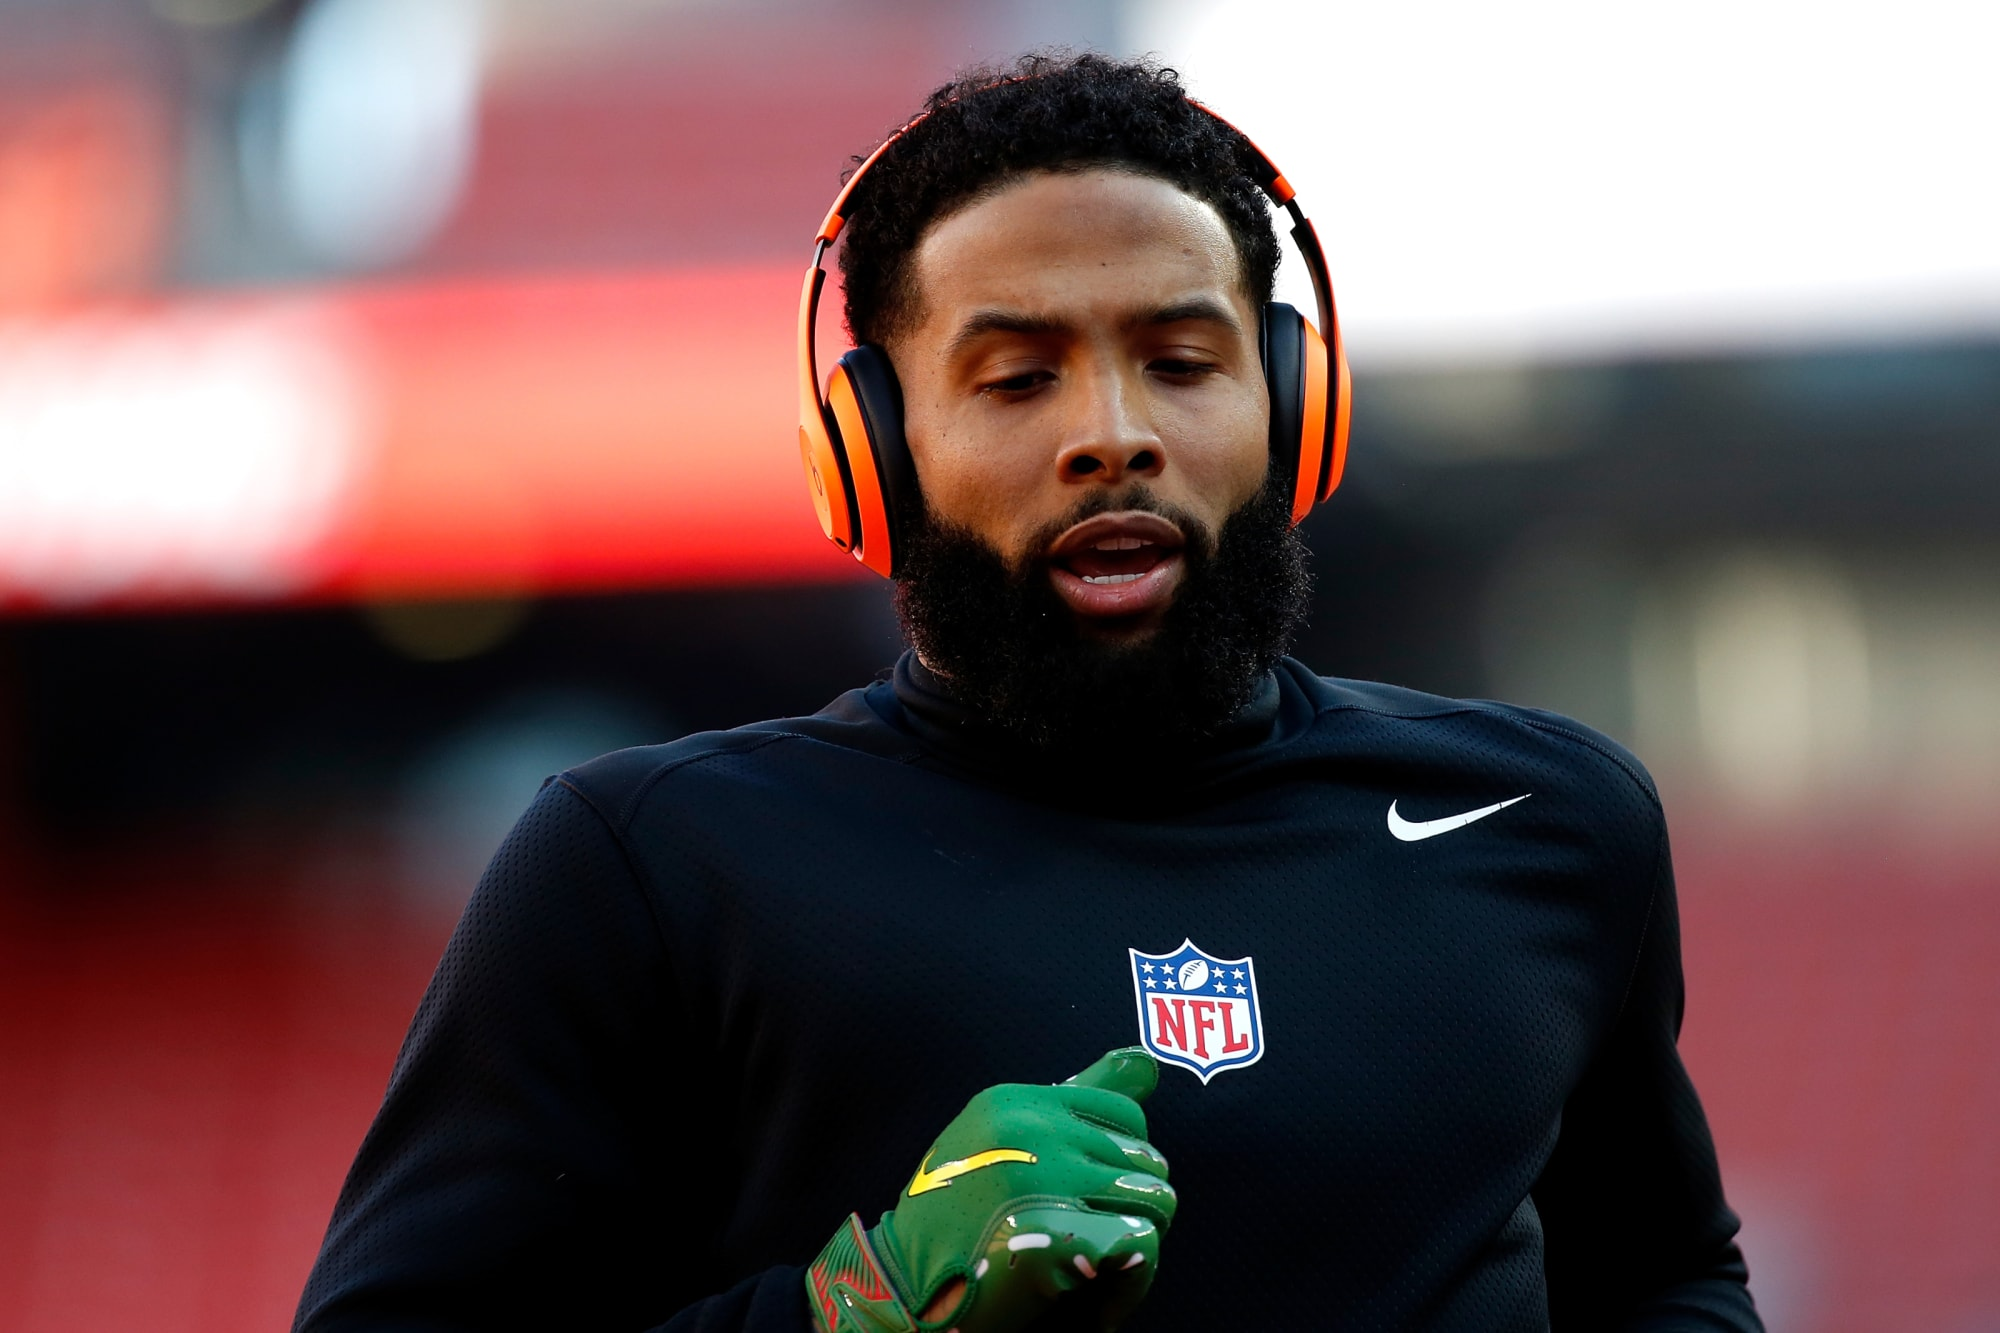 Browns Odell Beckham: NFL should cancel season, players 'not seen as human'